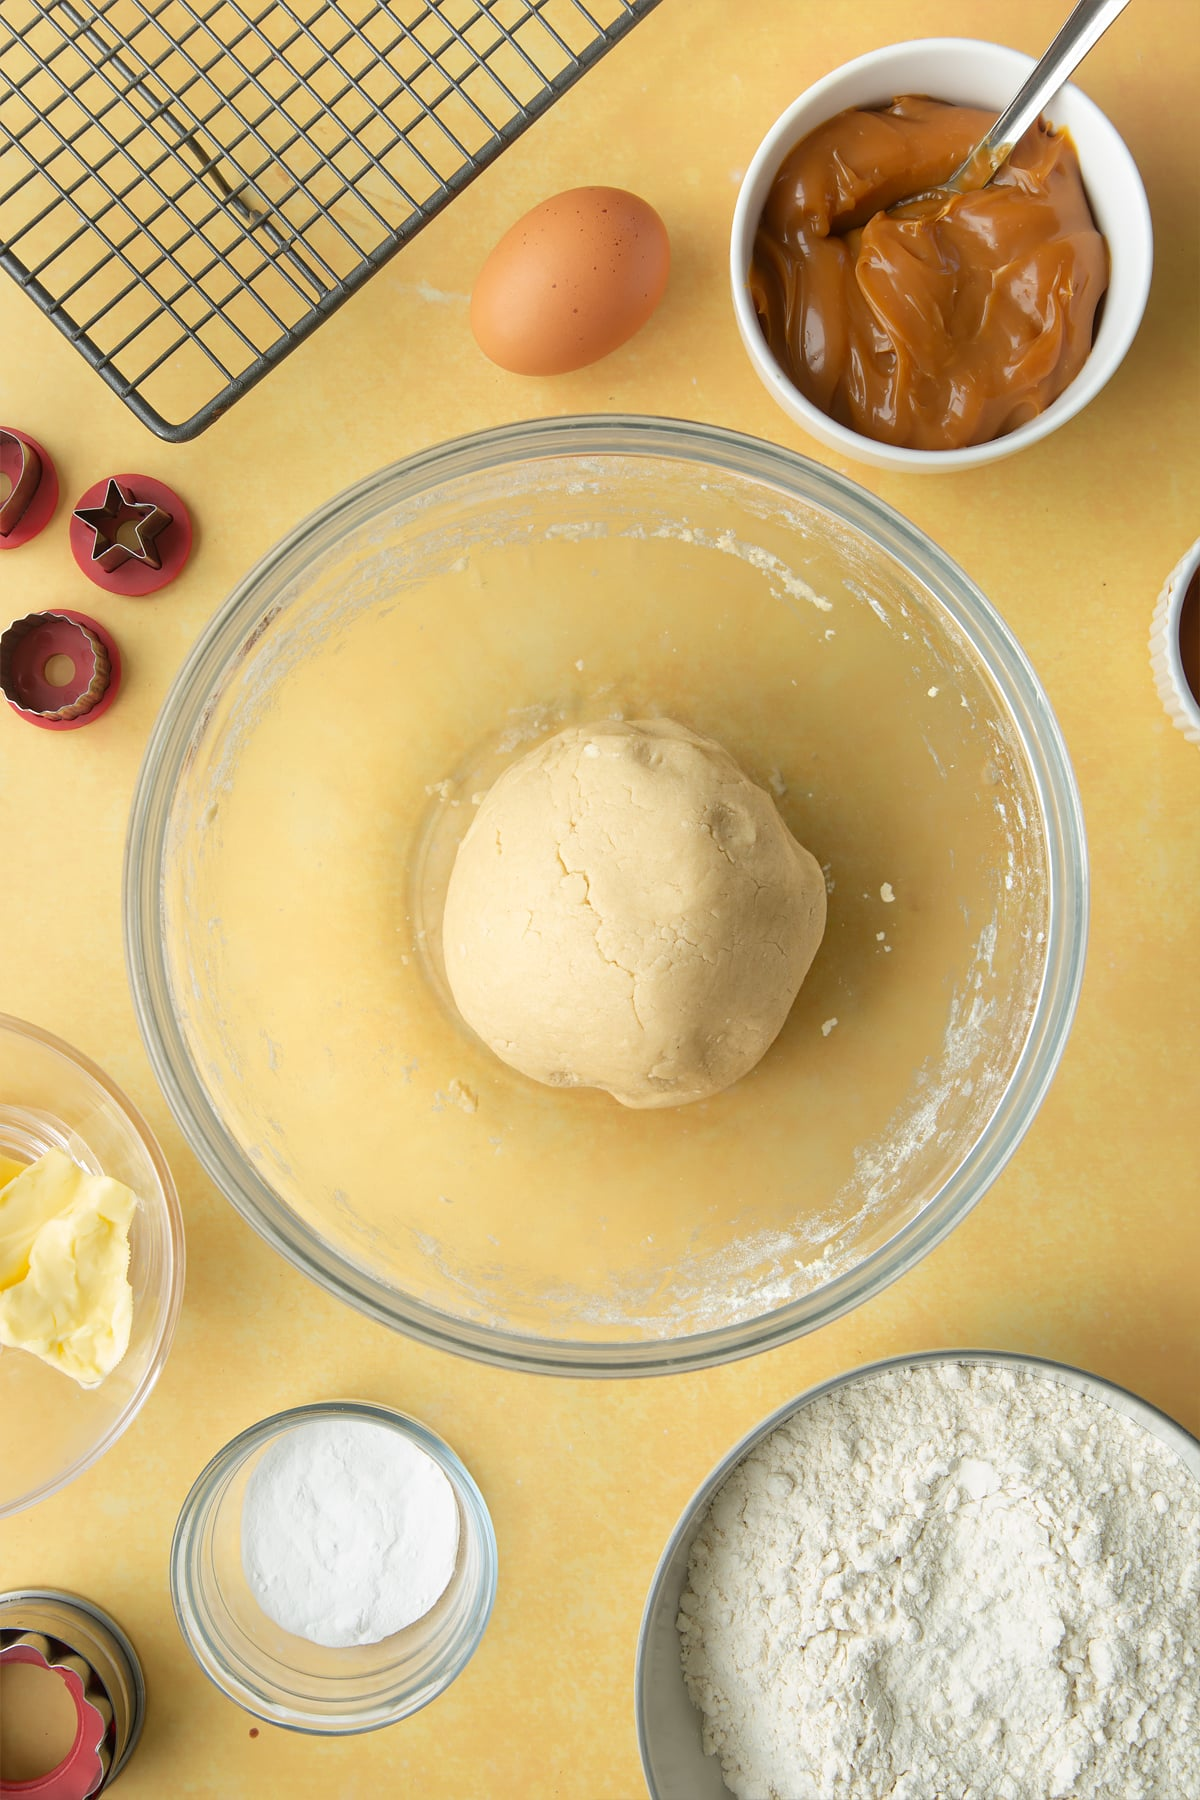 Overhead shot of a ball of dough in a large clear bowl